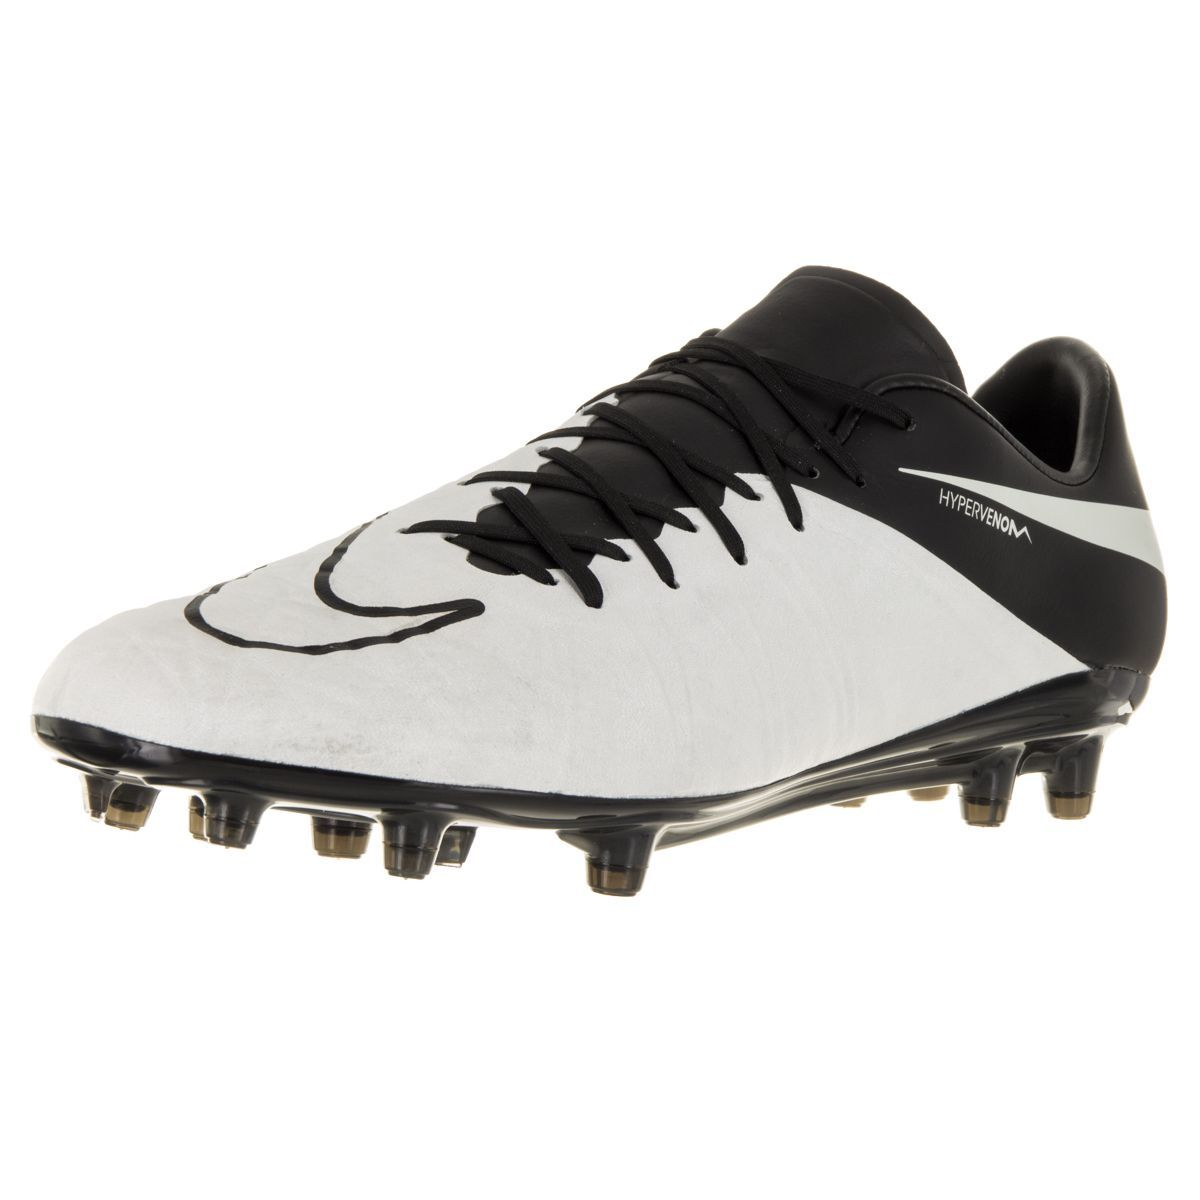 official photos 99482 f17f7 Nike Men s Hypervenom Phinish Lthr Fg Light Bone Light Bone Black Black  Soccer Cleat